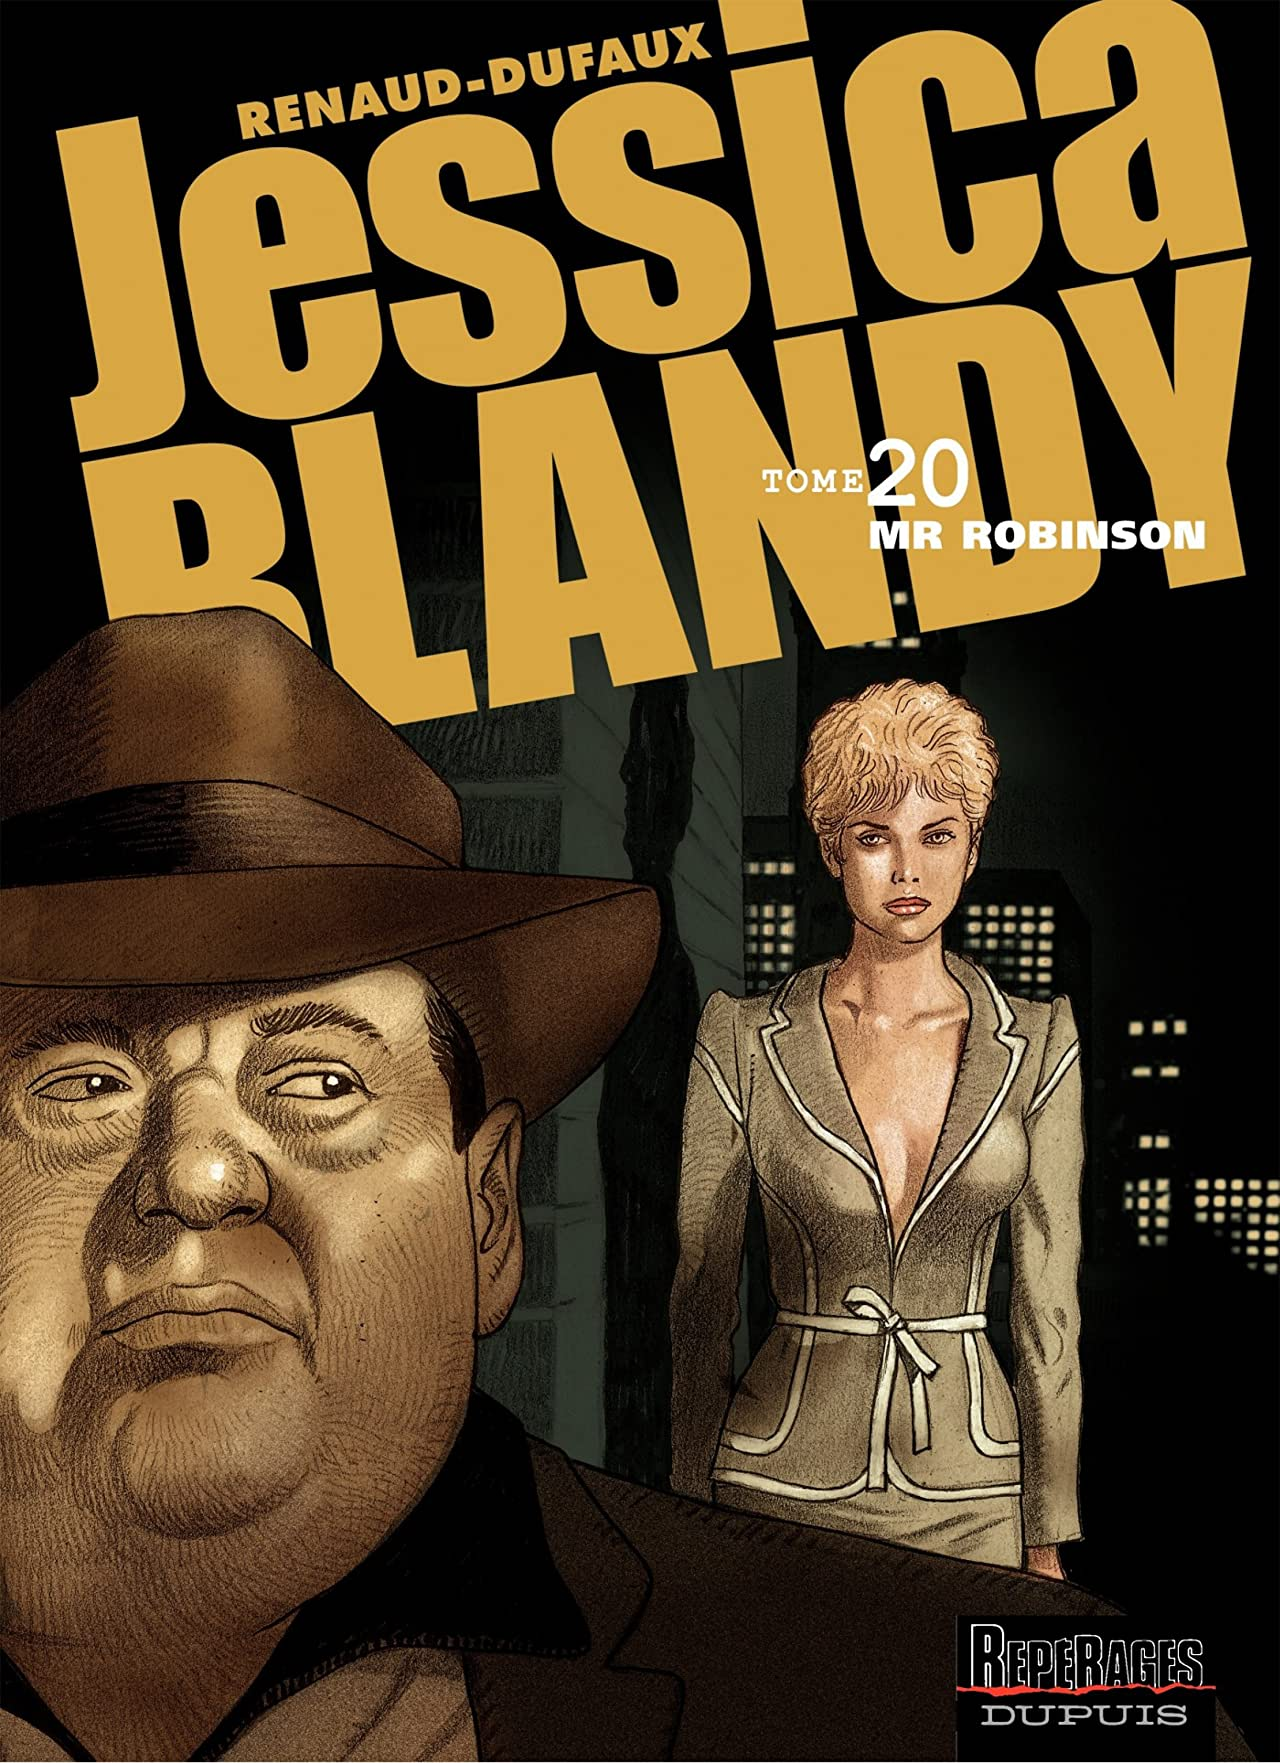 Jessica Blandy Vol. 20: Mr Robinson